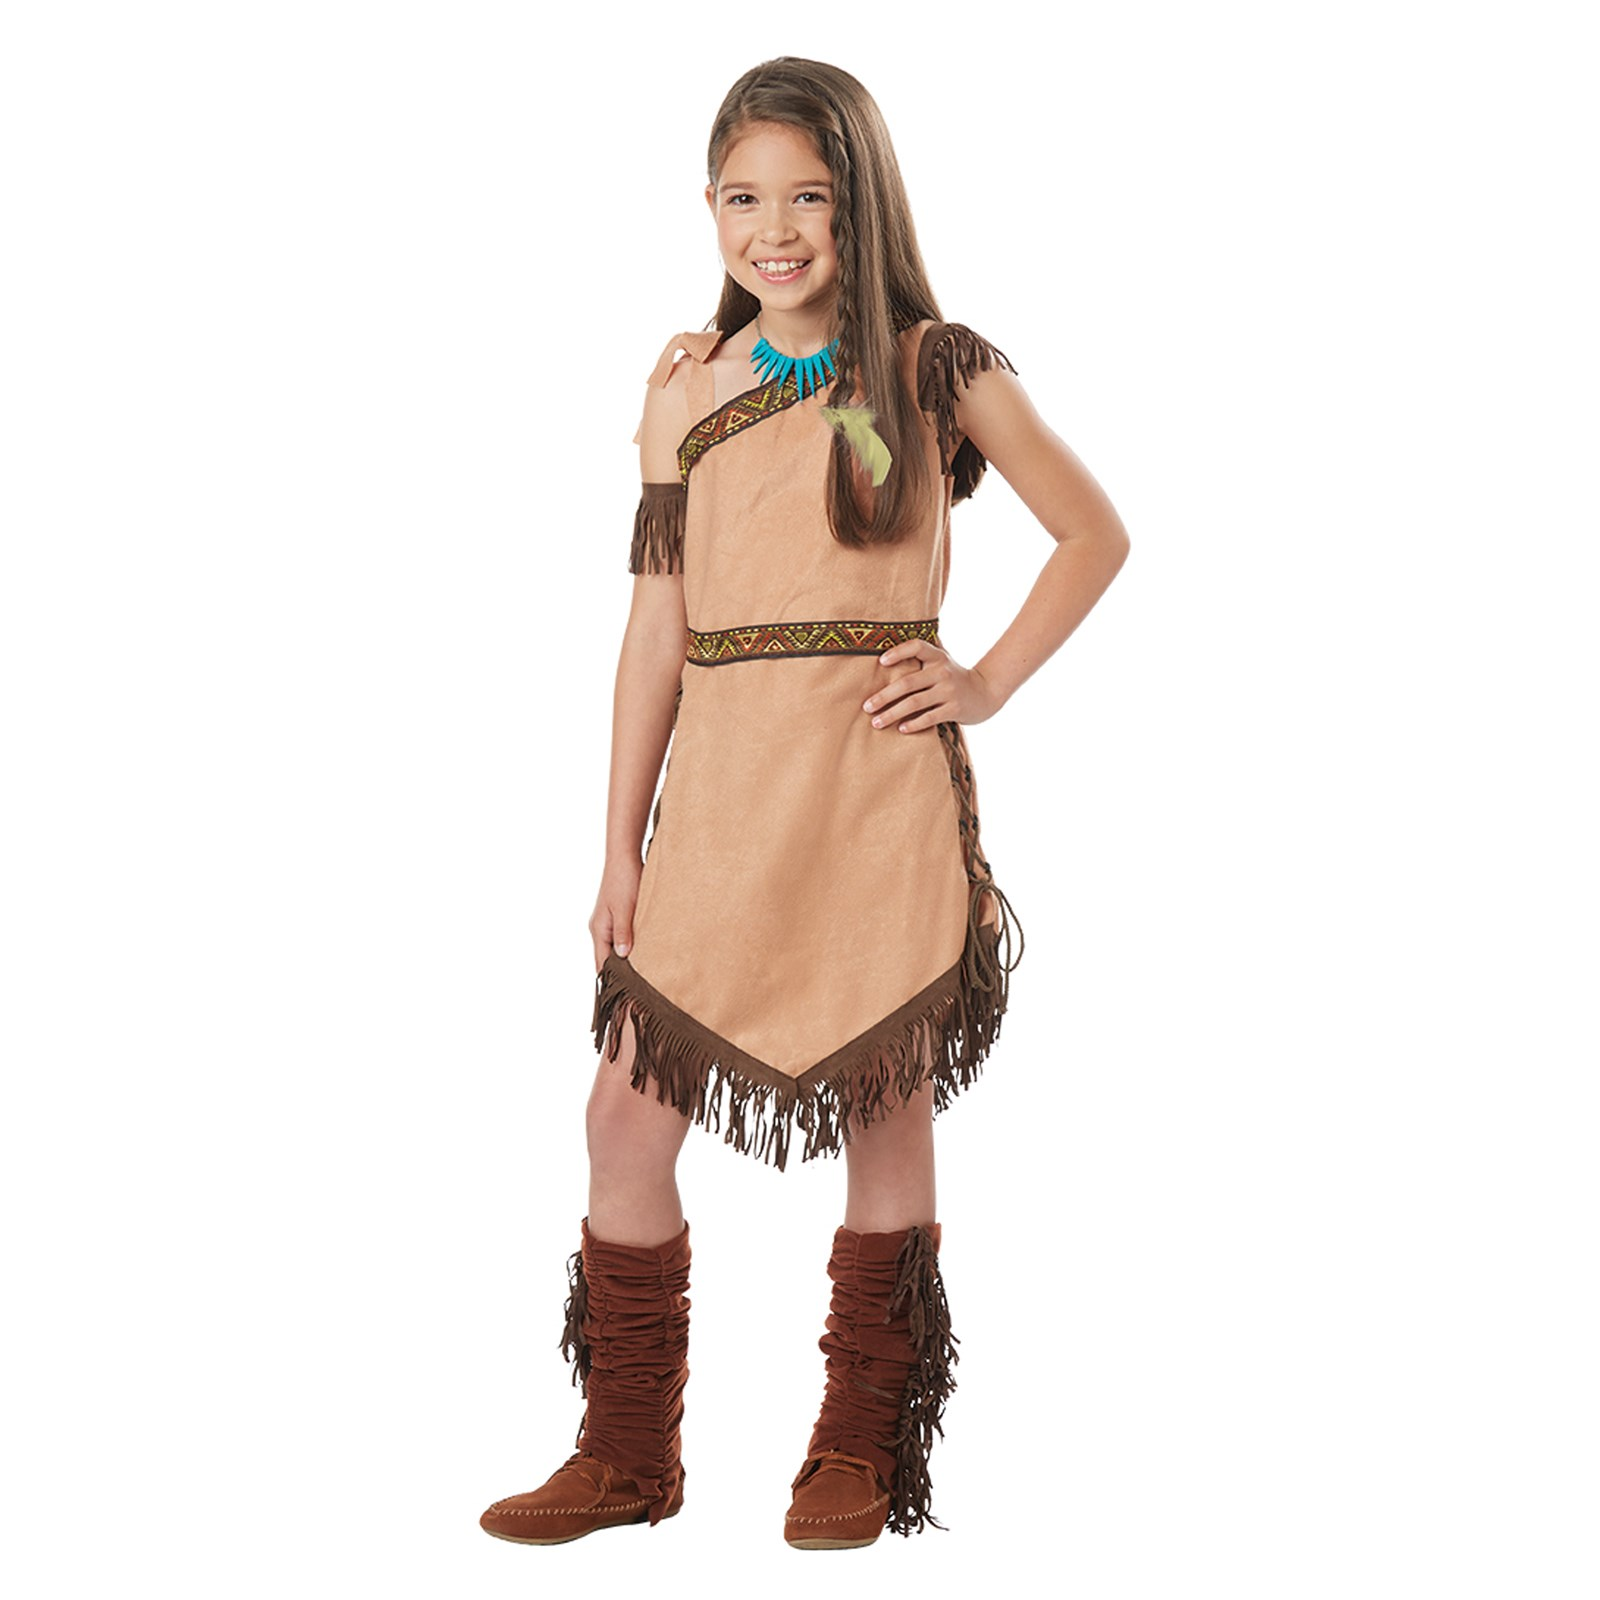 Native American Princess Girls Costume Small (6-8)